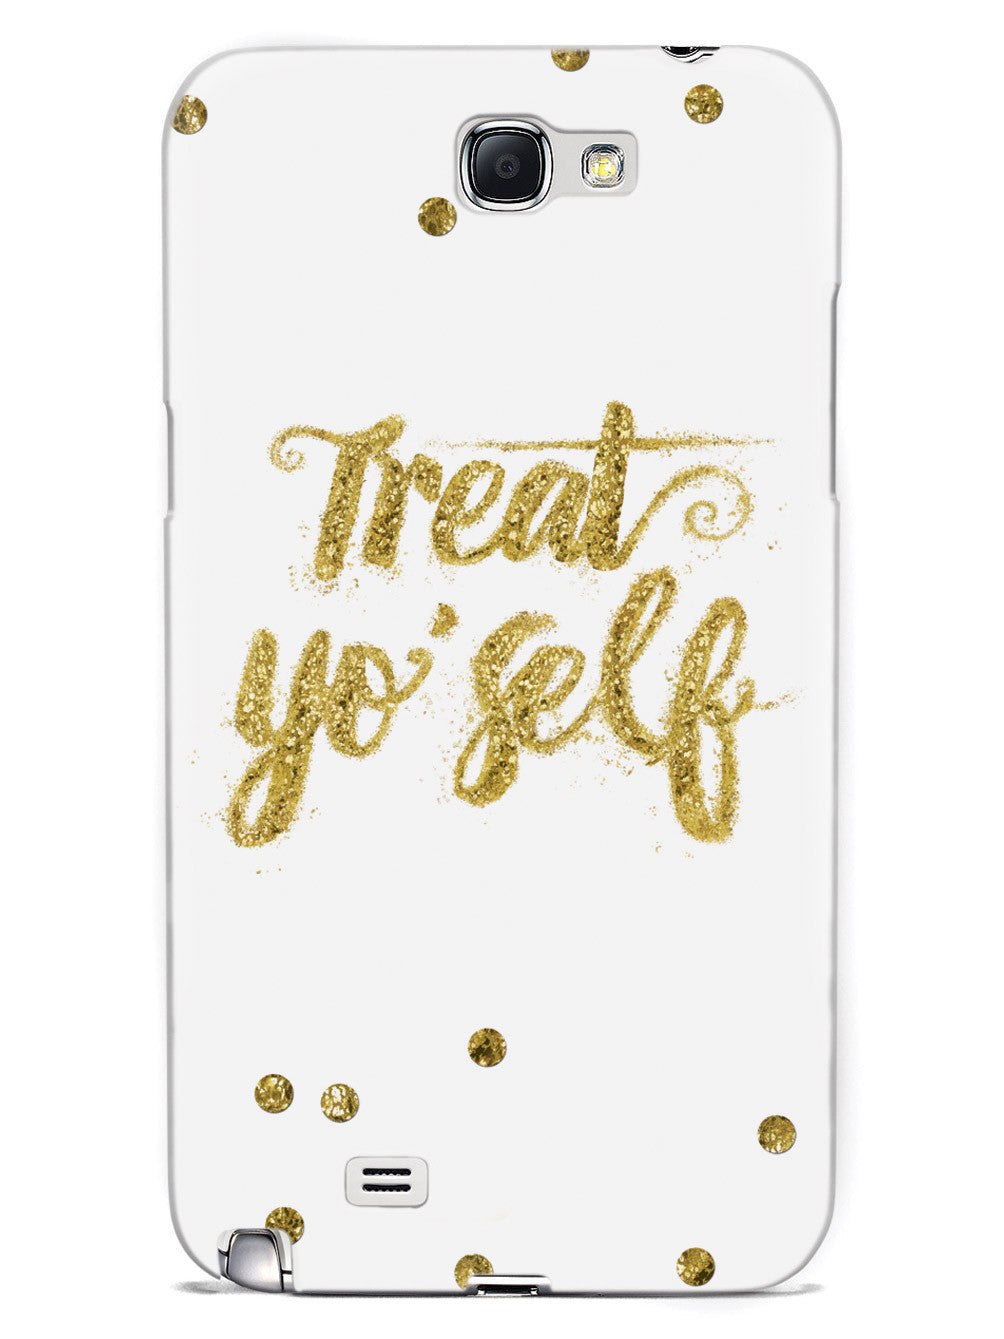 Treat Yo' Self Case